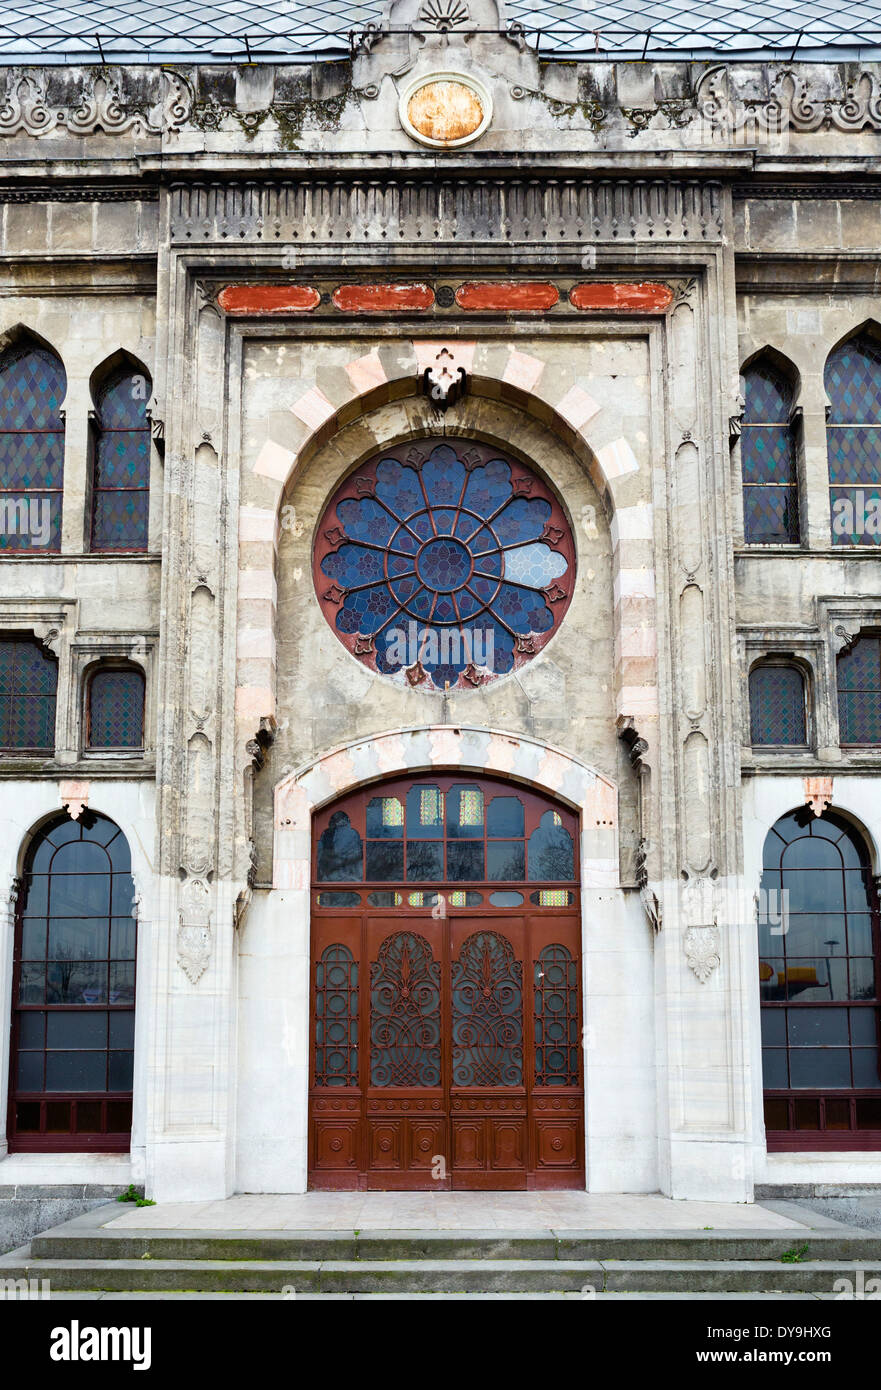 The crumbling facade of Sirkeci Station, the former eastern terminus of the Orient Express, Eminonu district, Istanbul,Turkey - Stock Image